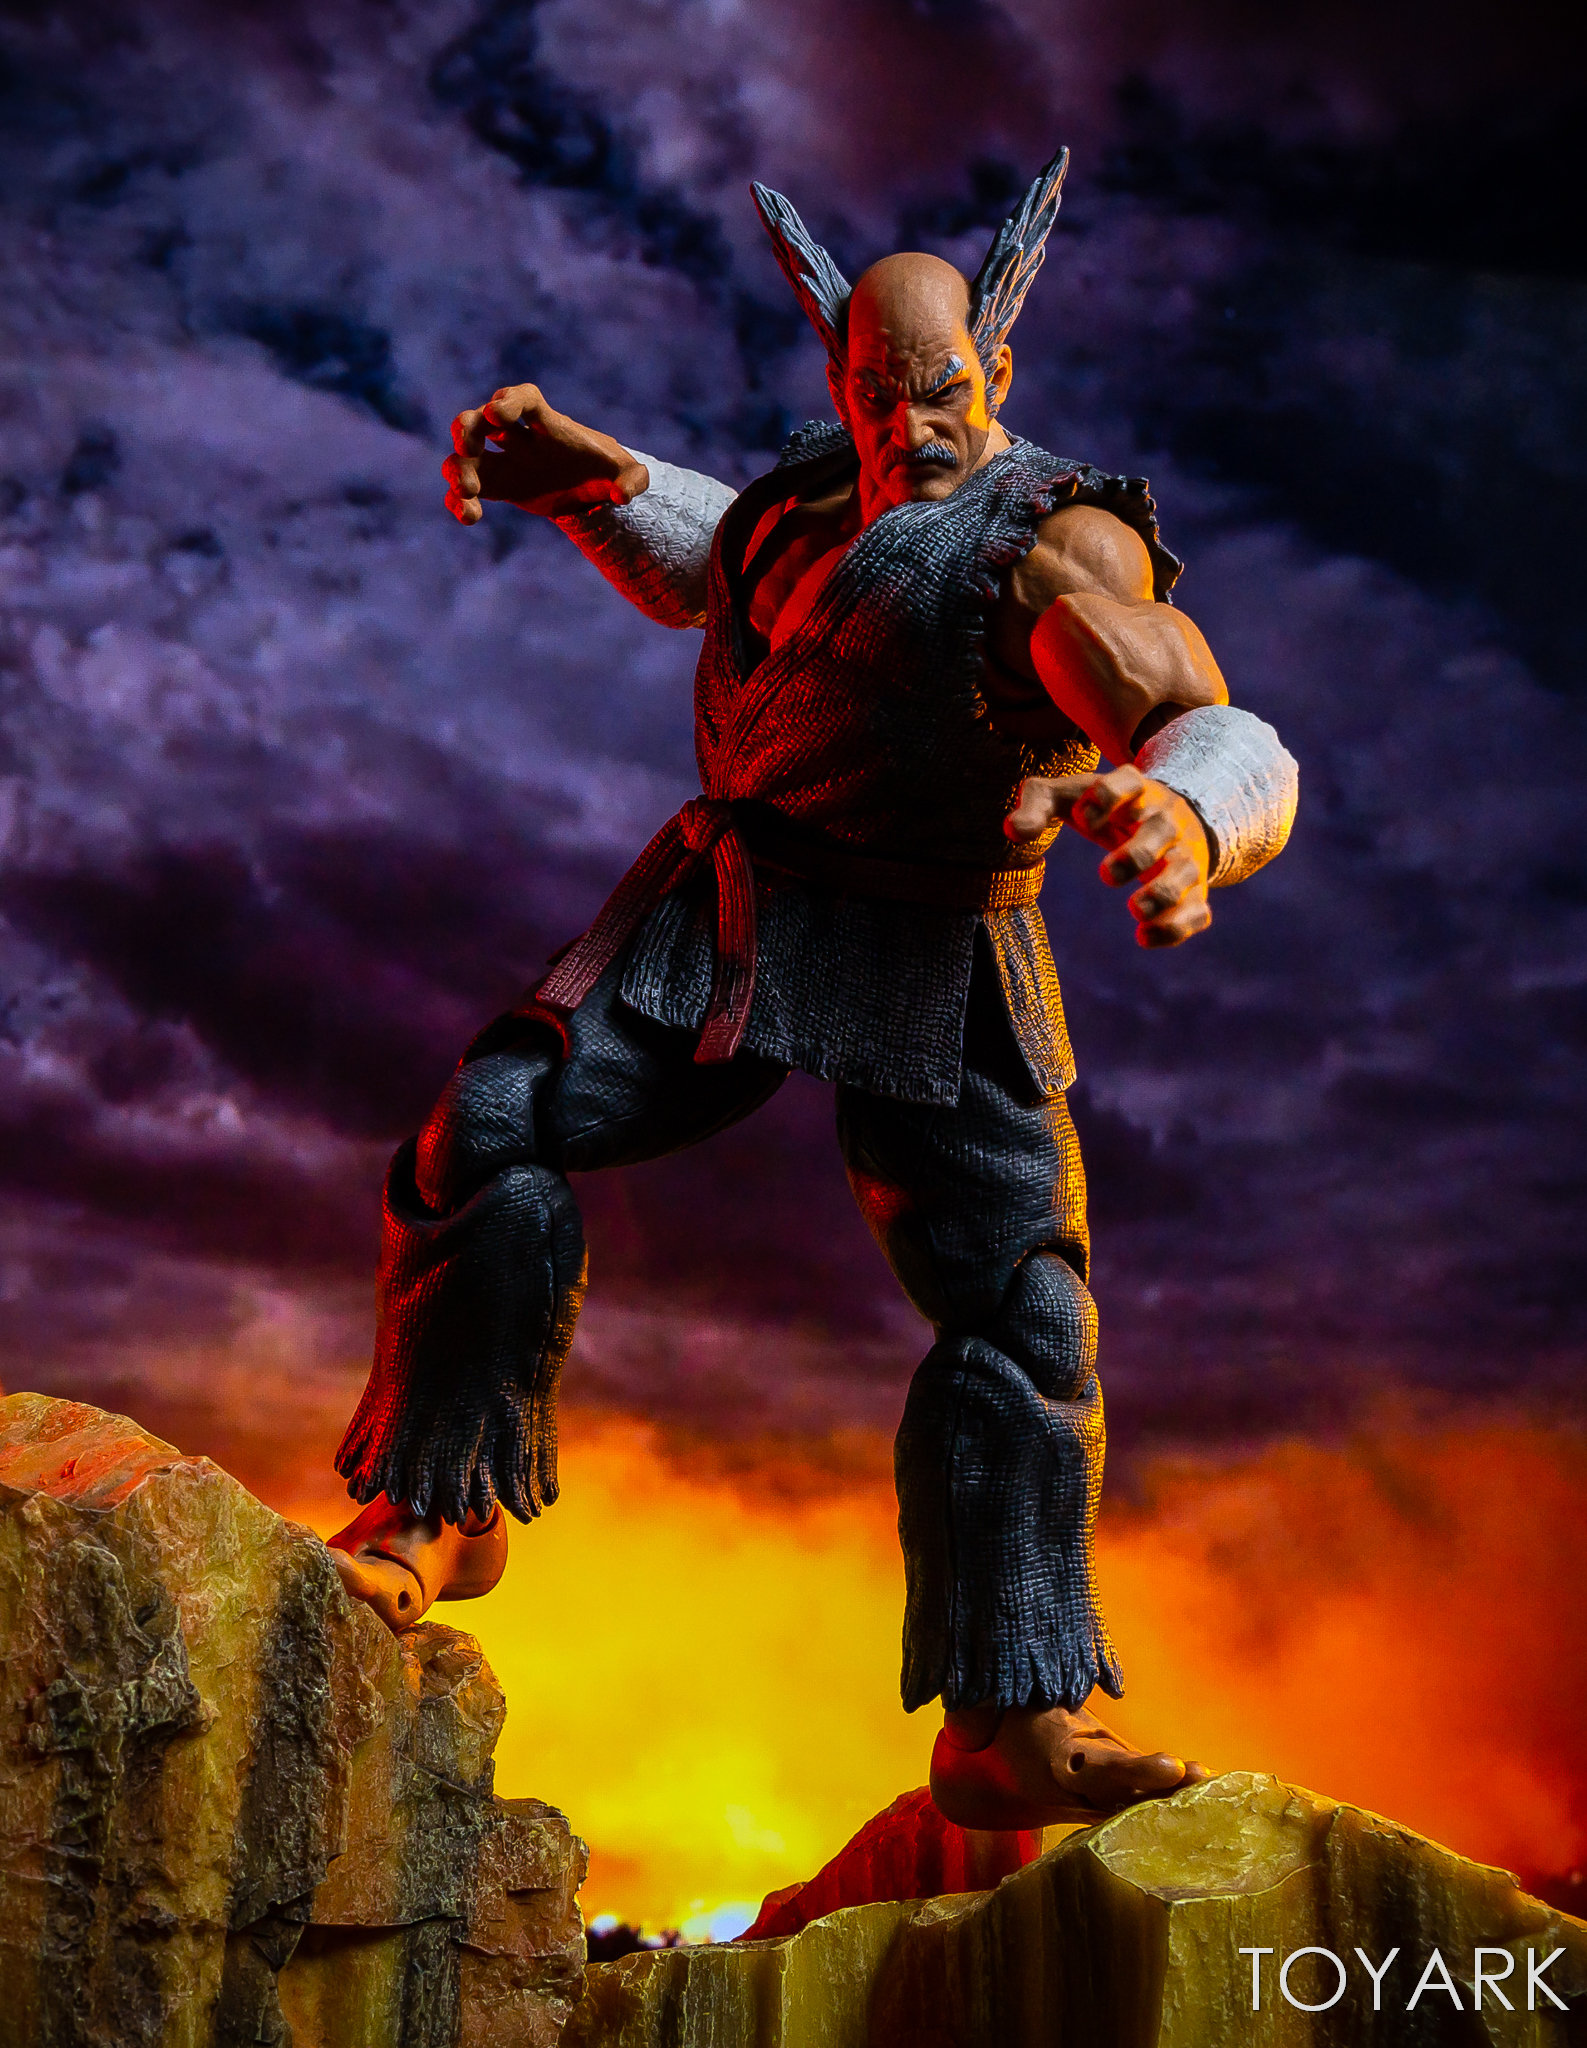 https://news.toyark.com/wp-content/uploads/sites/4/2018/05/Storm-Heihachi-Figure-020.jpg